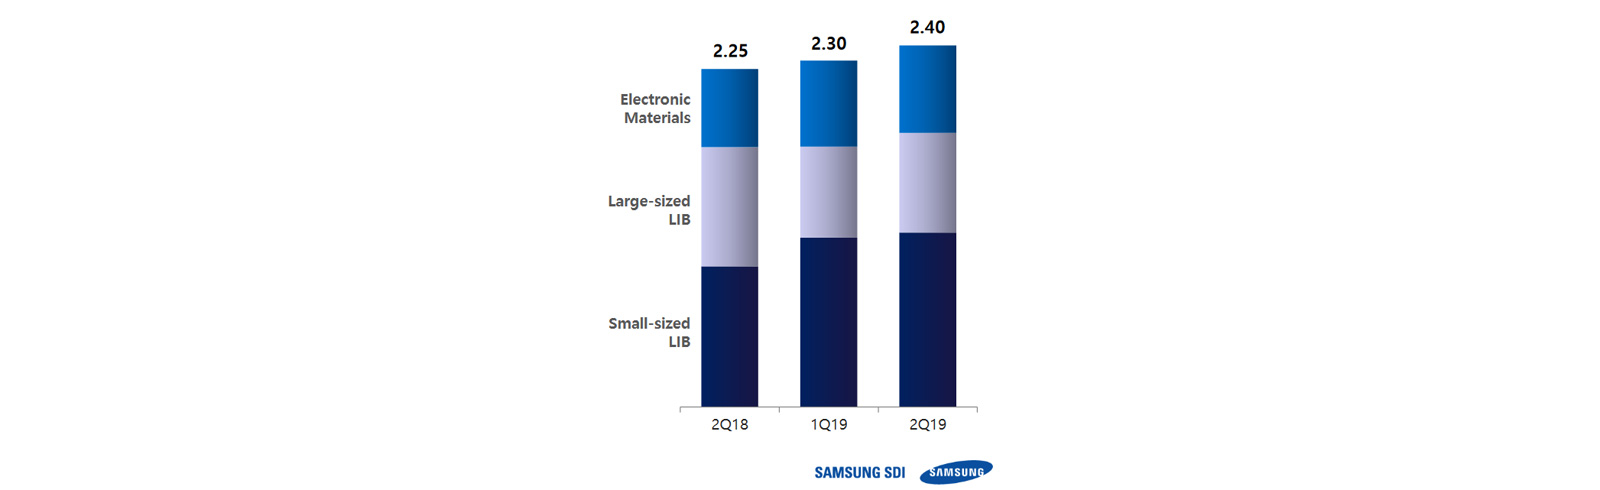 Samsung SDI records robust sales of EV batteries in Europe for Q2 2019